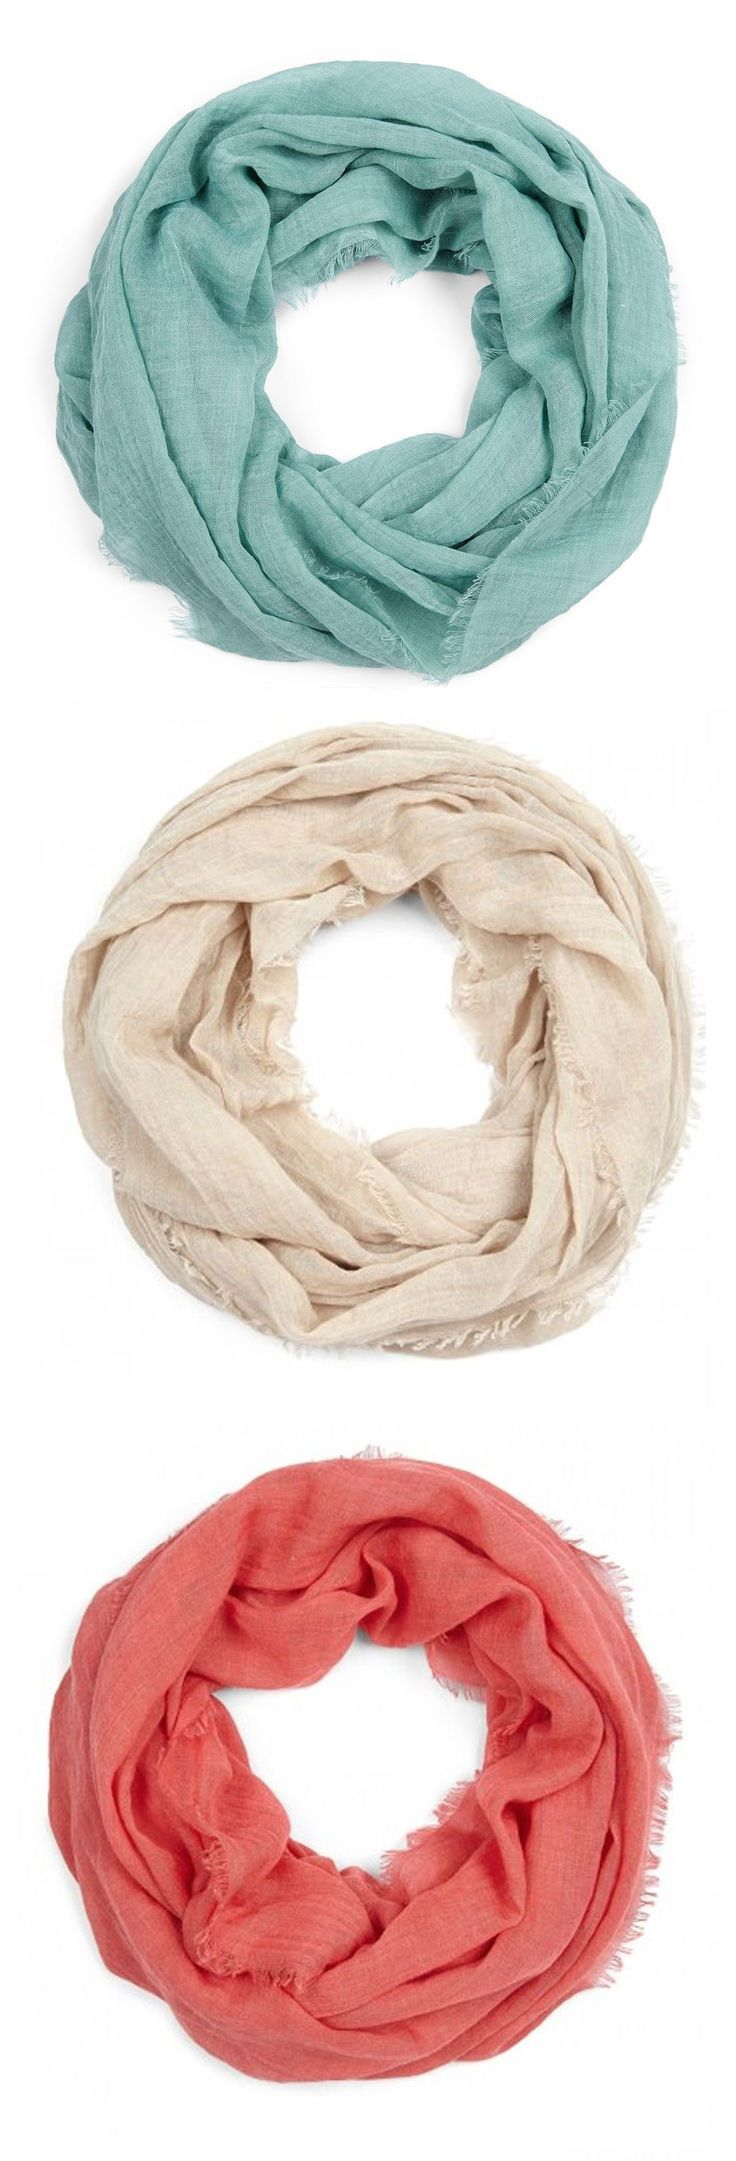 Lightweight Infinity Scarves. I want all the colors! #fashion #scarf #spring